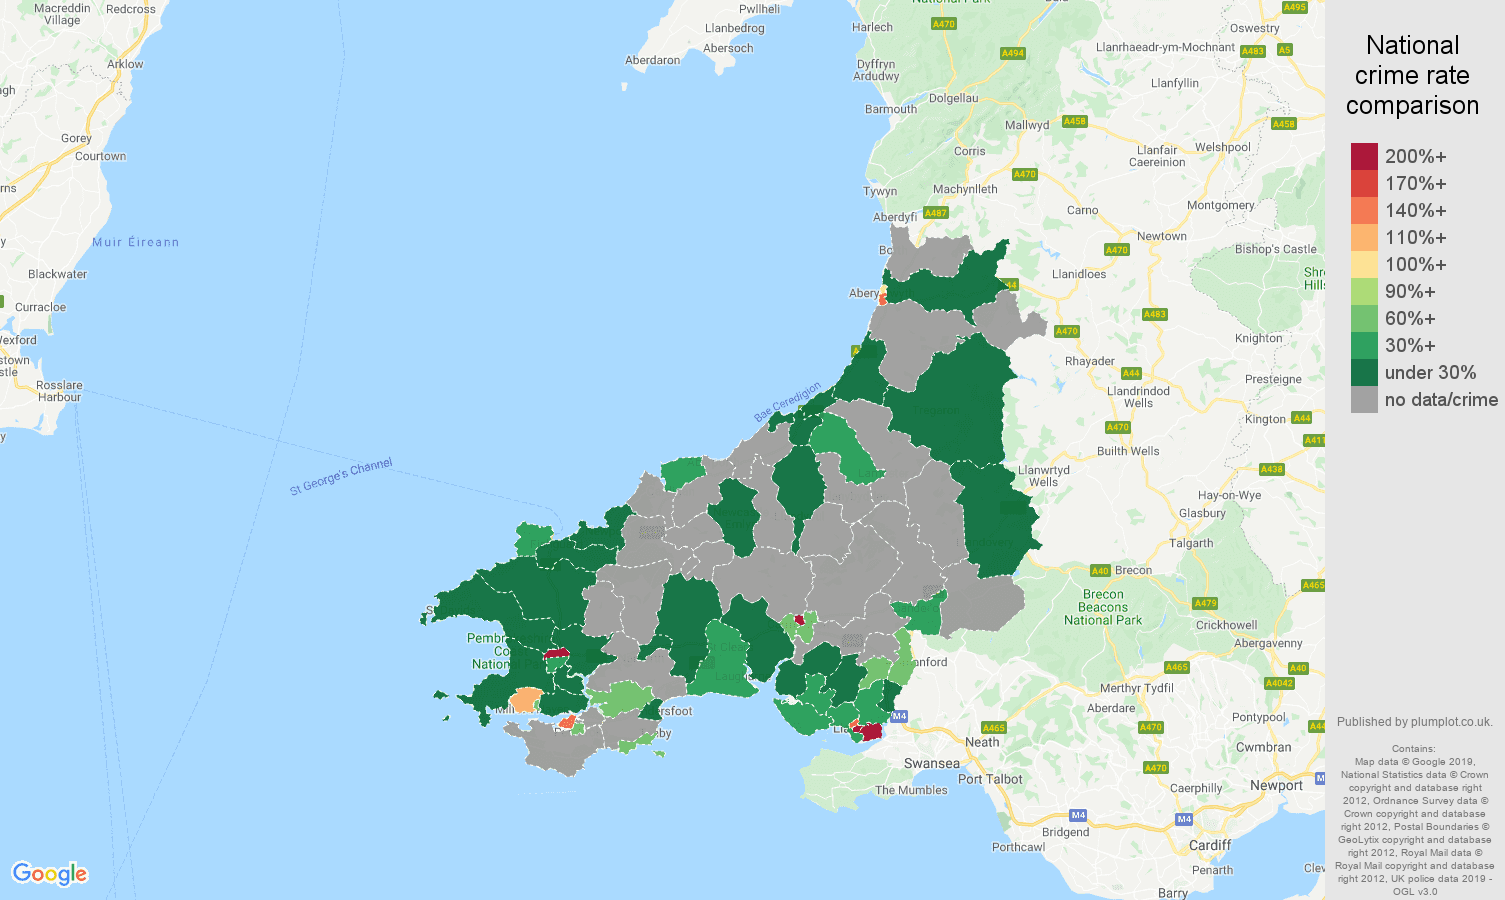 Dyfed shoplifting crime rate comparison map